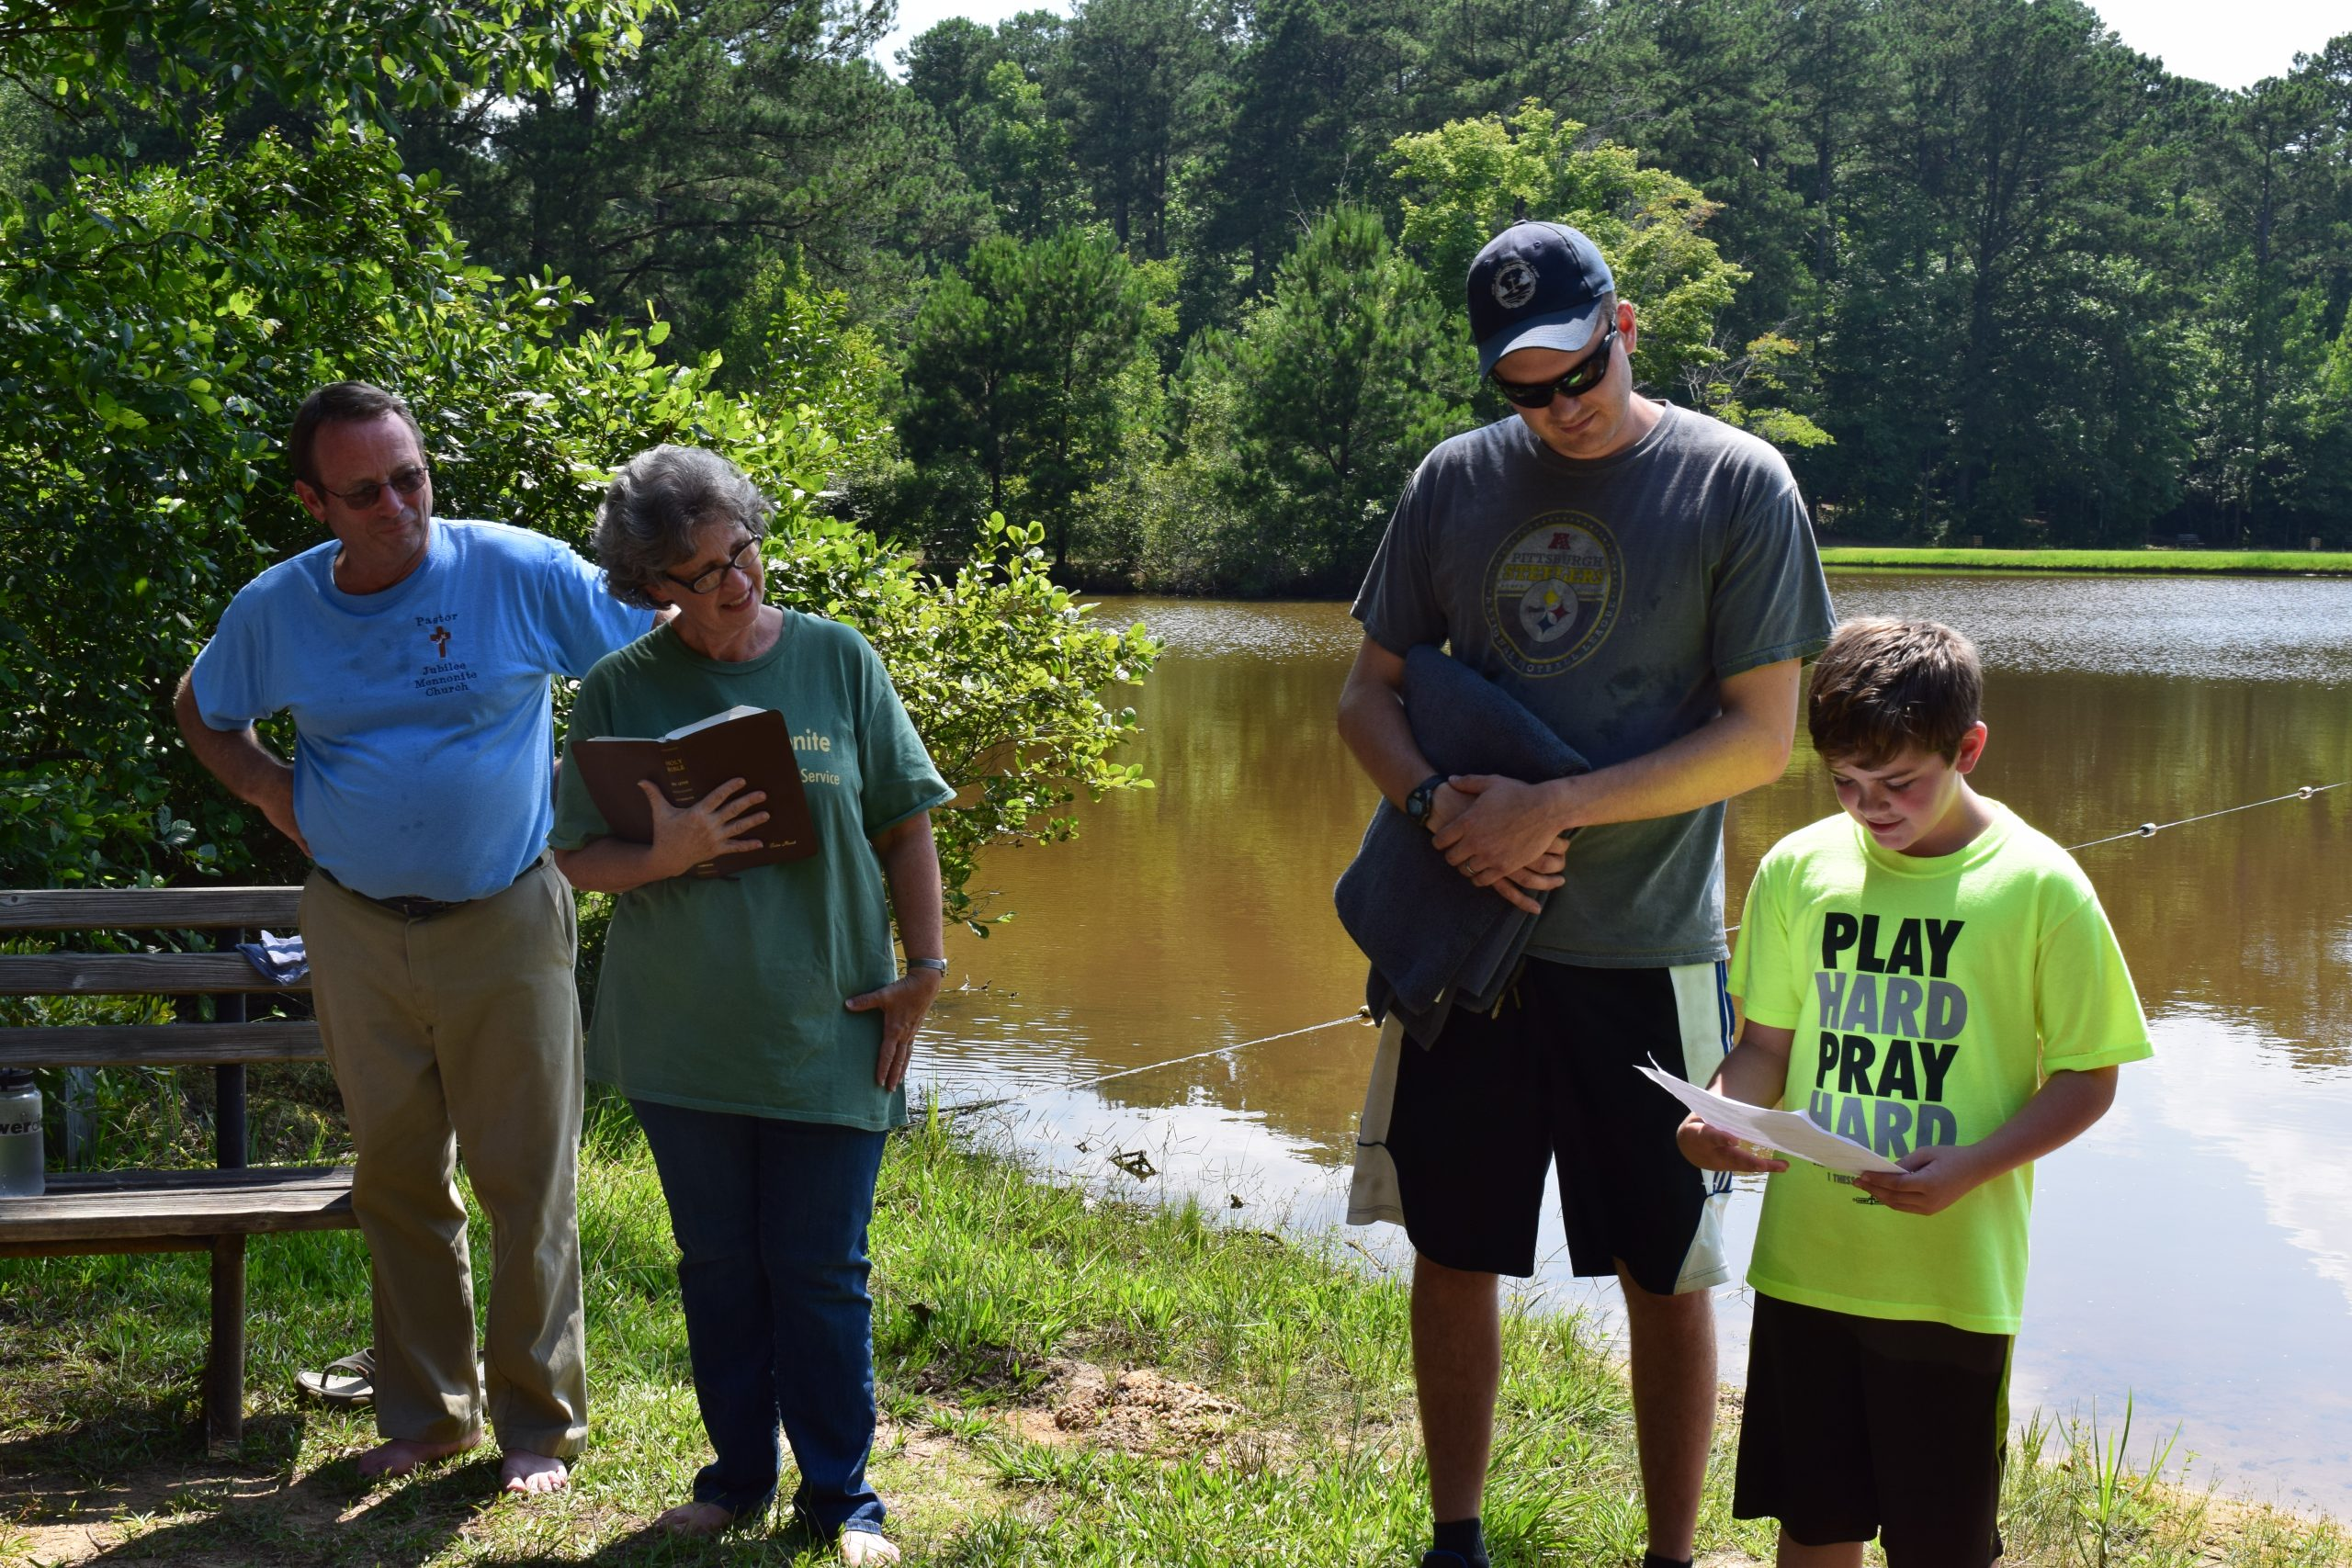 Jubilee Mennonite Church provides leadership at Pine Lake Fellowship Camp in Meridian, Mississippi. Pastors Duane and Elaine Maust look on as Noah Chisolm prepares for baptism with his mentor, Matt Graybill. (Photo provided by Laurie Oswald Robinson)